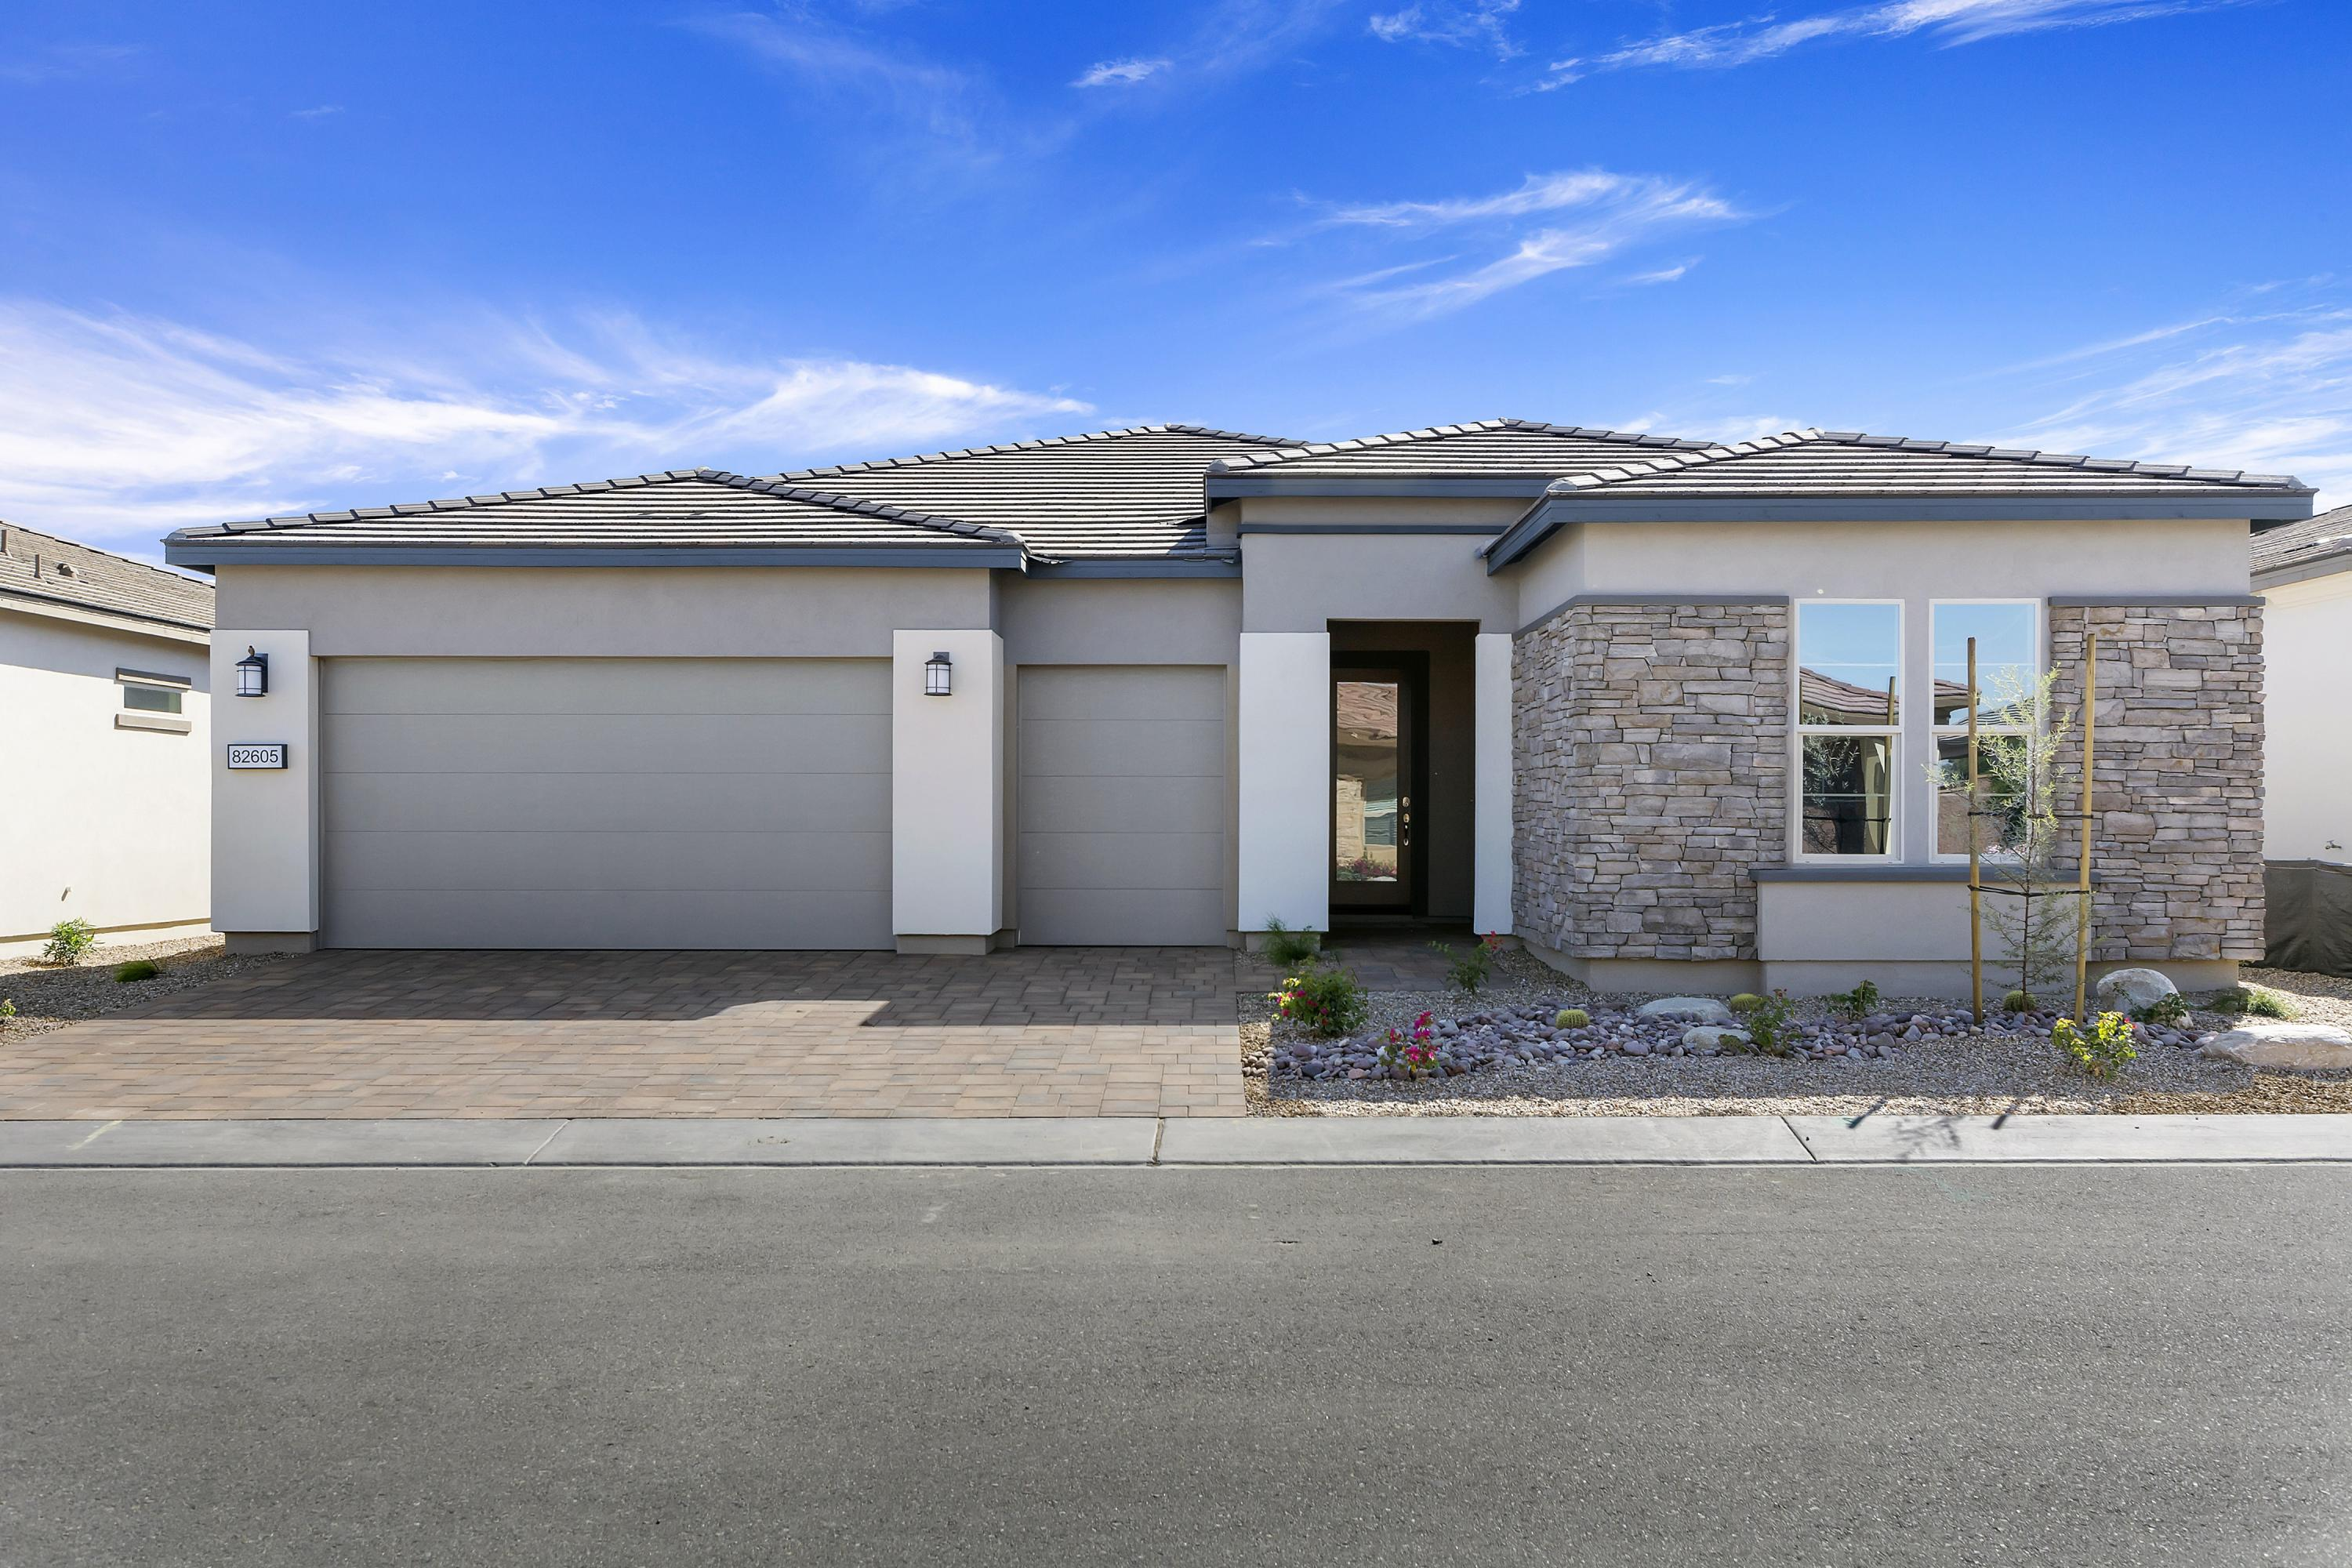 Photo of 82605 East Mccarroll (Lot 4018) Drive, Indio, CA 92201